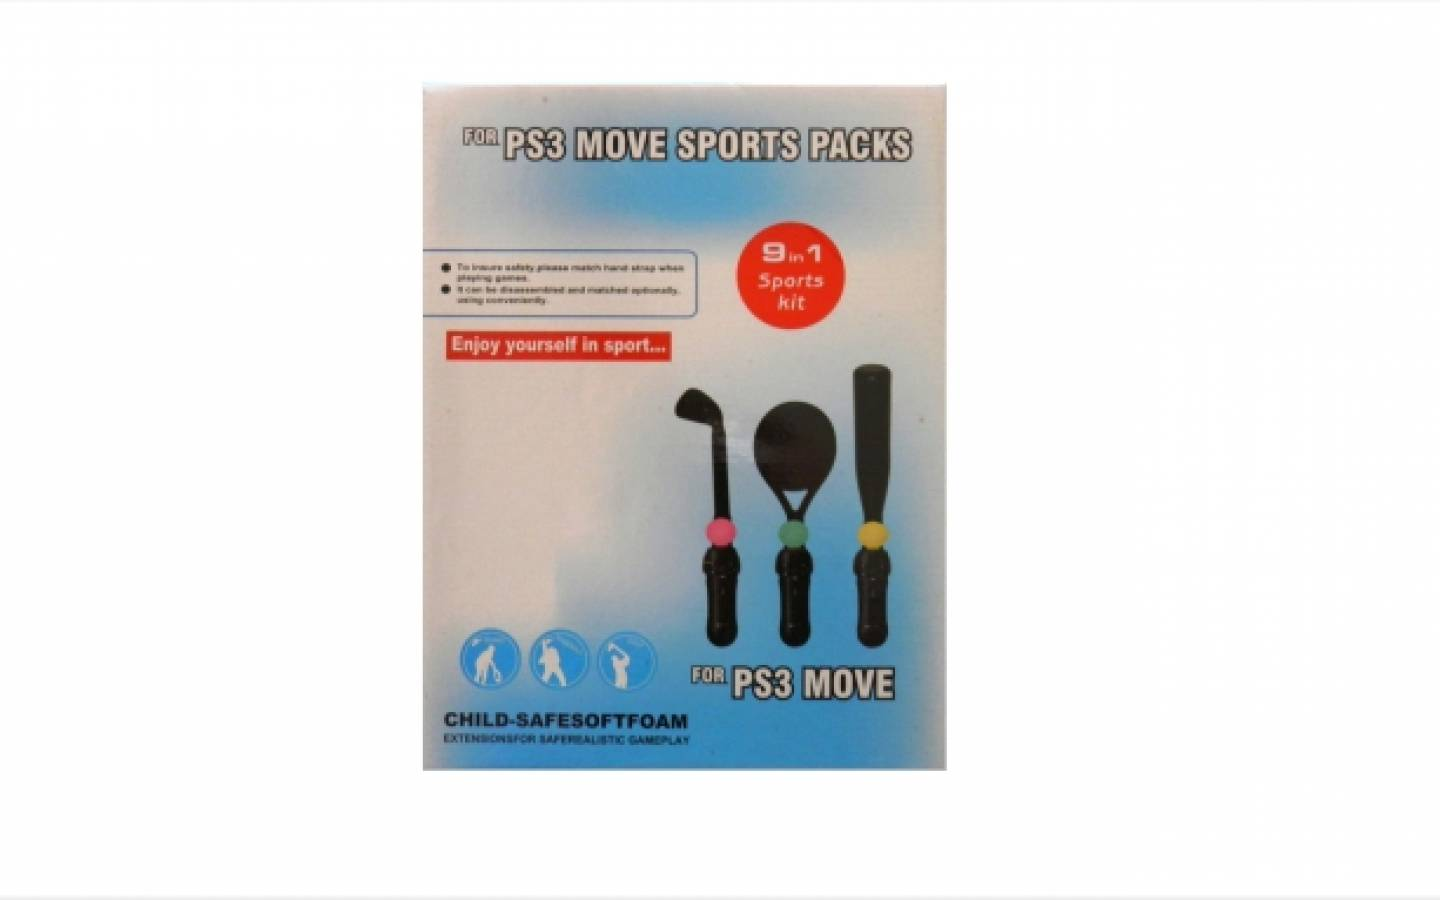 Para PS3 Move Sports Packs 9 en 1.